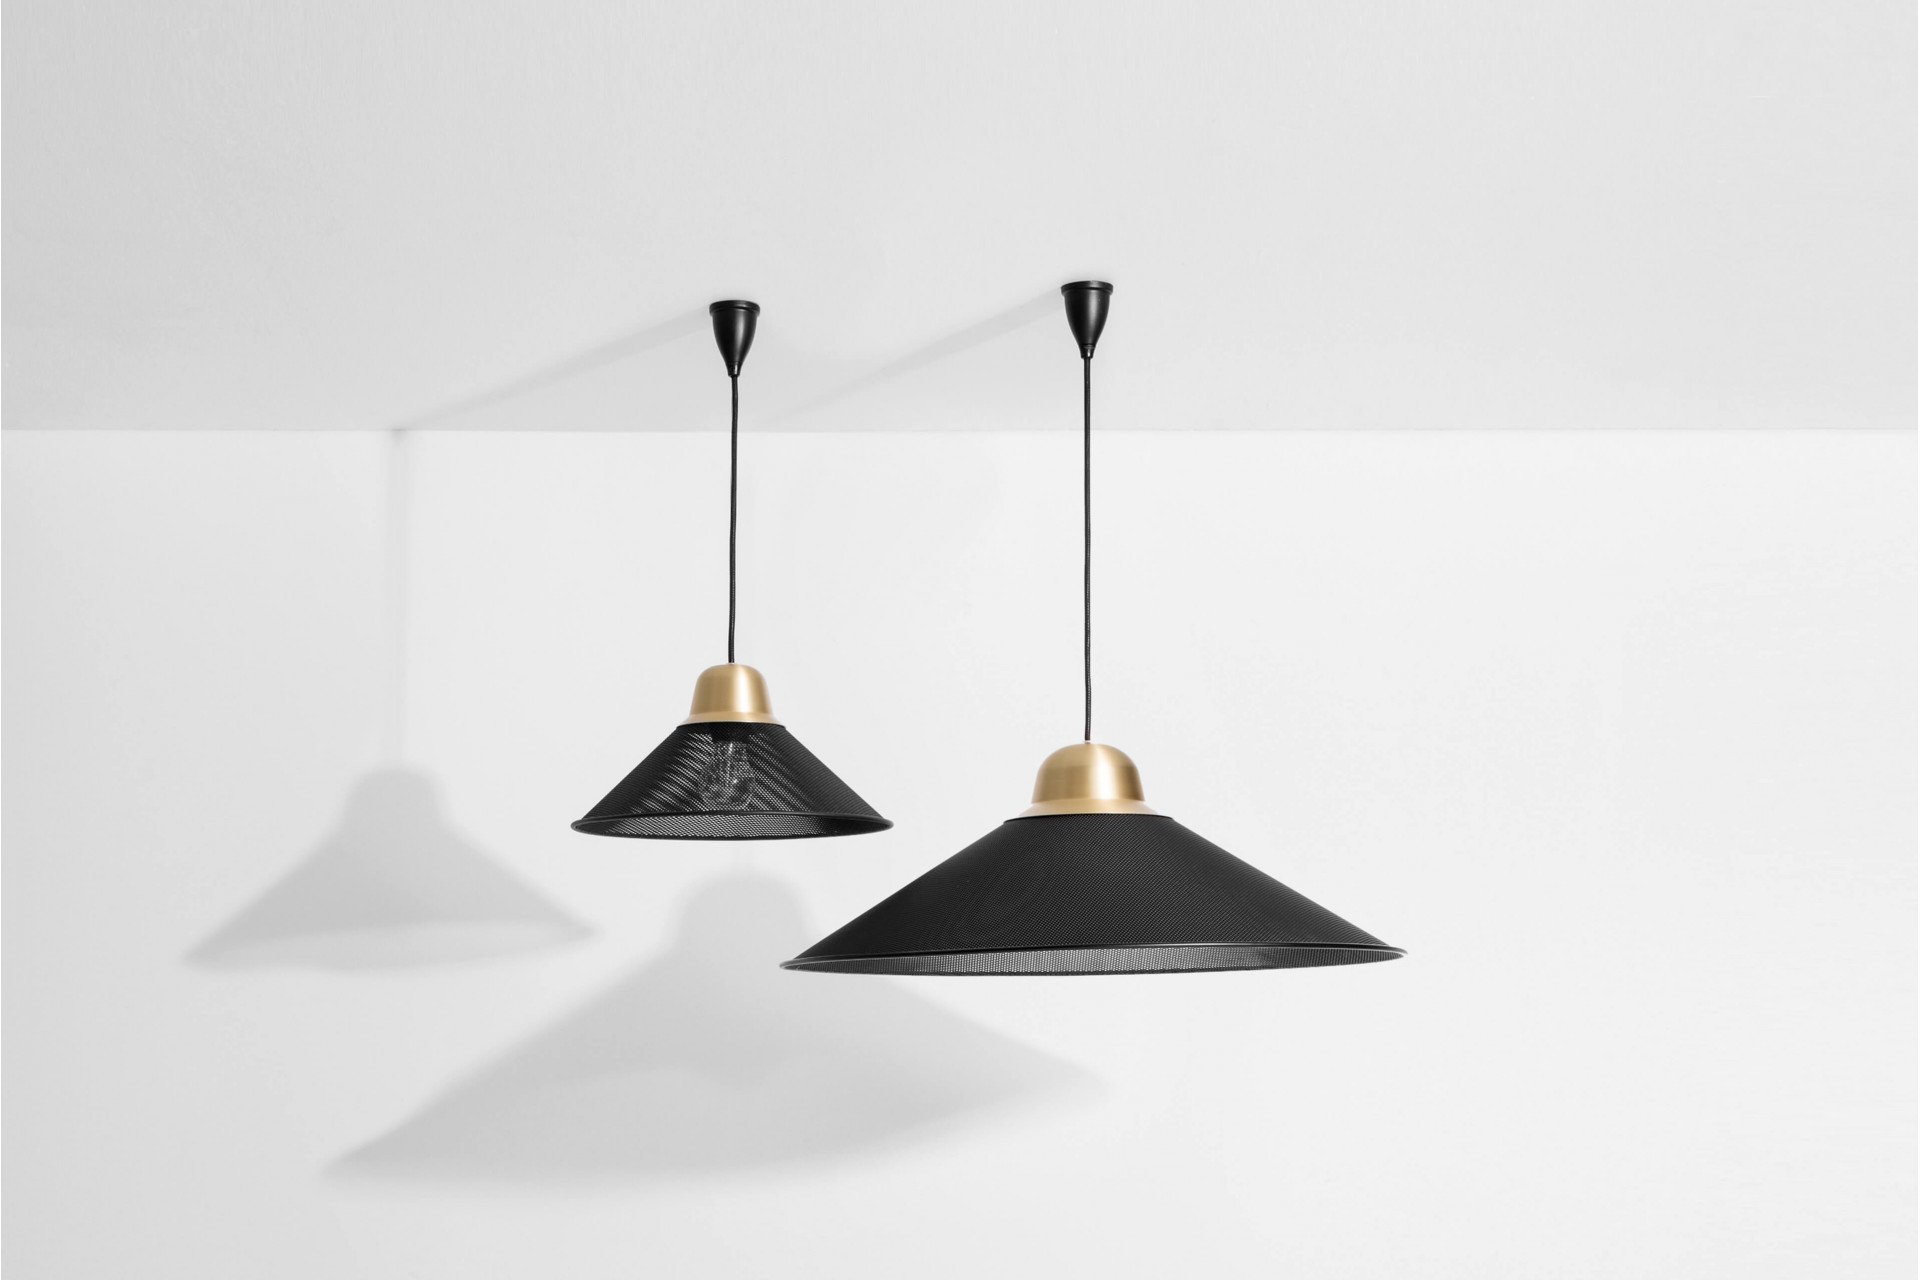 Aura Pendant Lamp Black L by T. Kral for Petite Friture